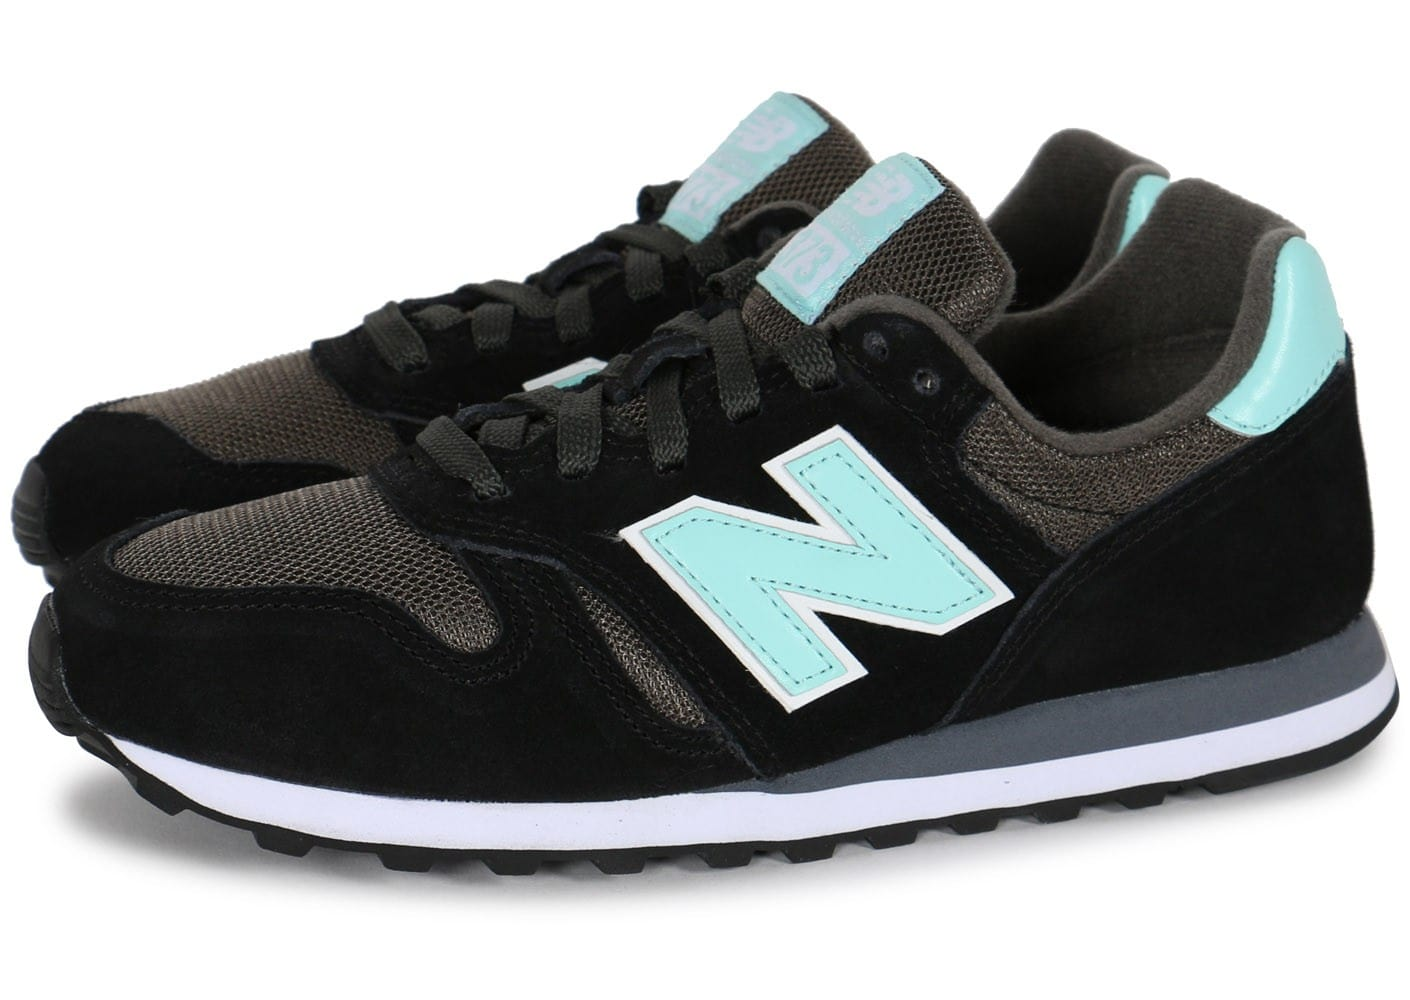 new balance w373 noire turquoise chaussures chaussures chausport. Black Bedroom Furniture Sets. Home Design Ideas